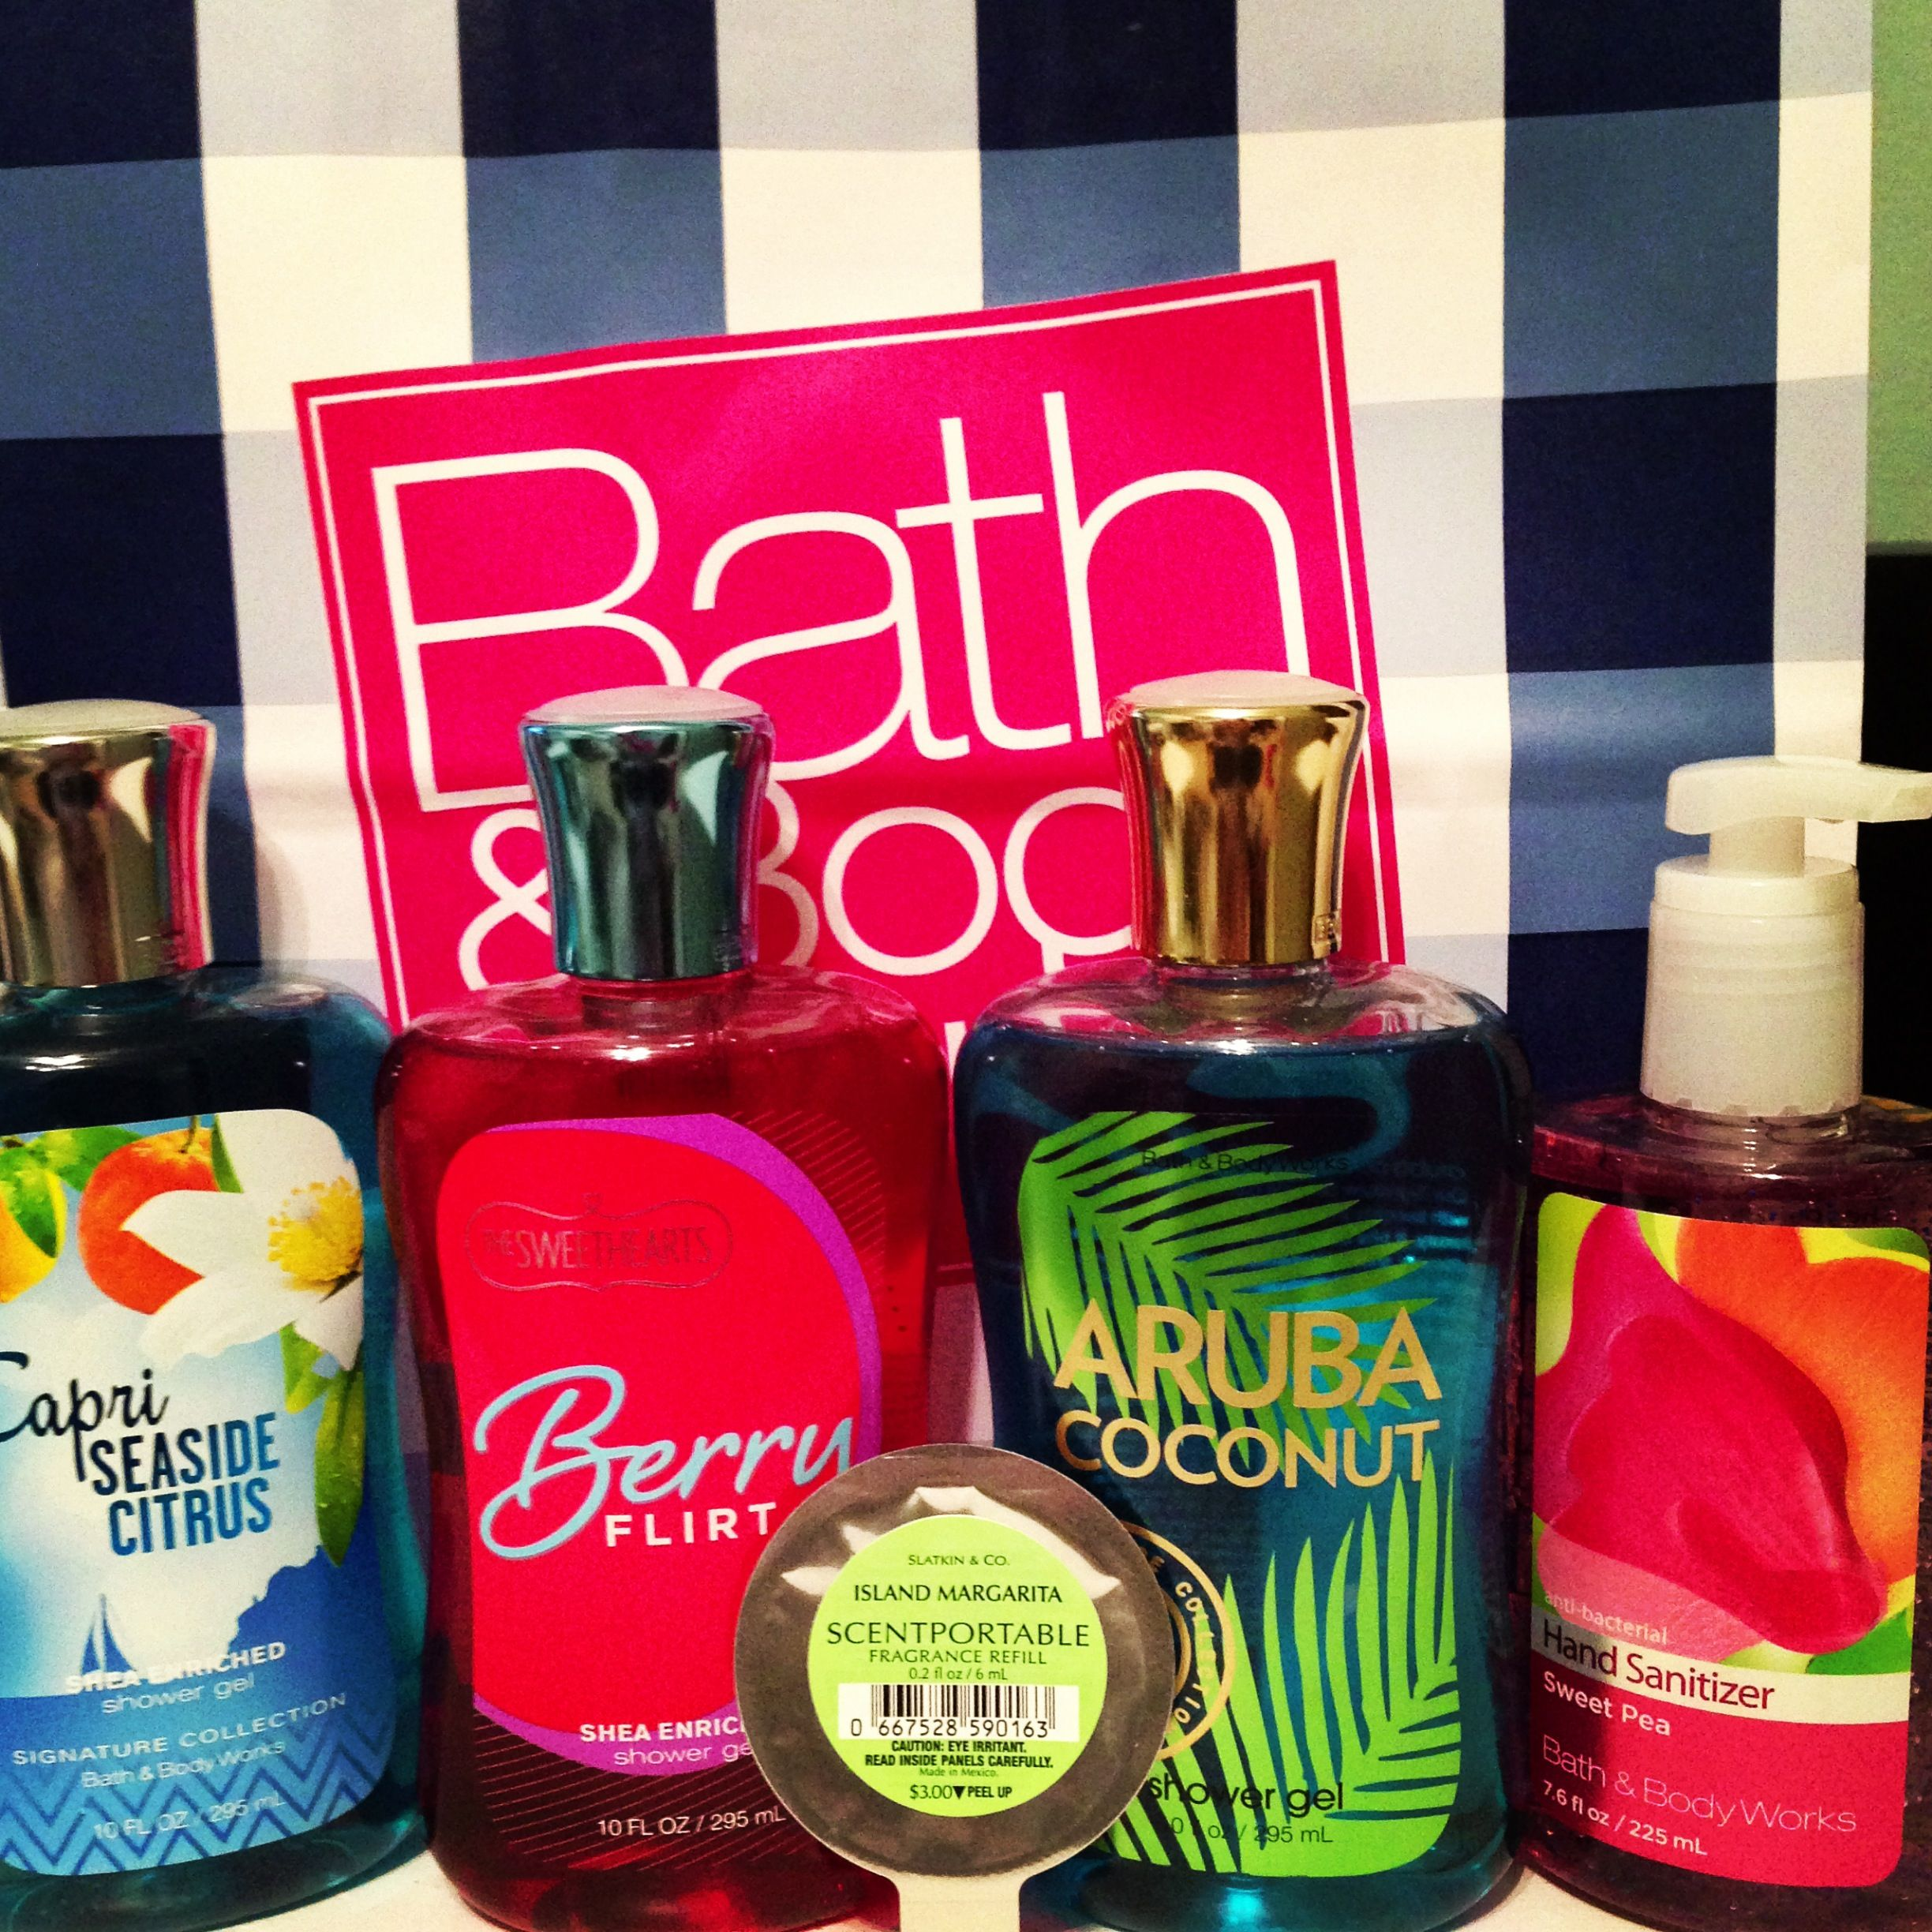 Bath Body Works Bath Body Works Bath Body Hand Sanitizer